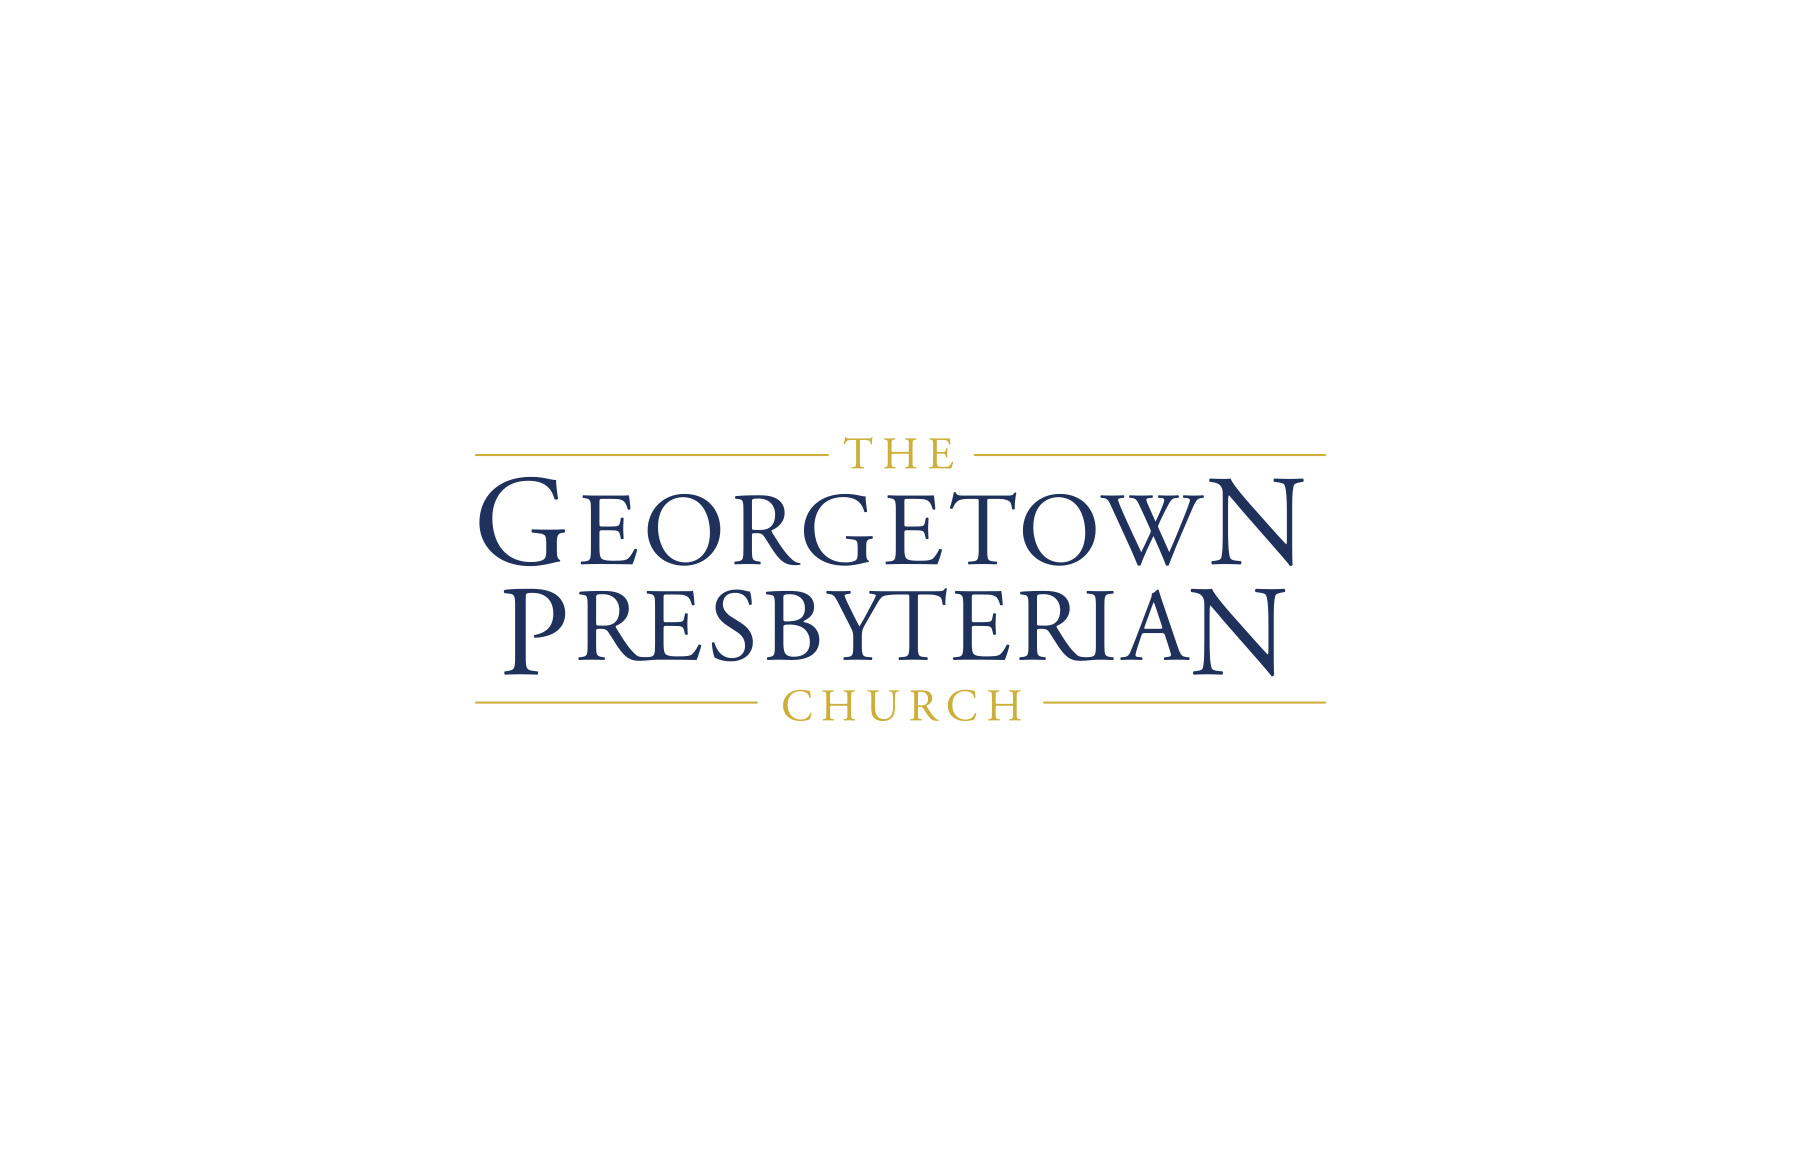 berman_brand_group_joshua_berman_brand_identity_logo_the_georgetown_presbyterian_church.jpg